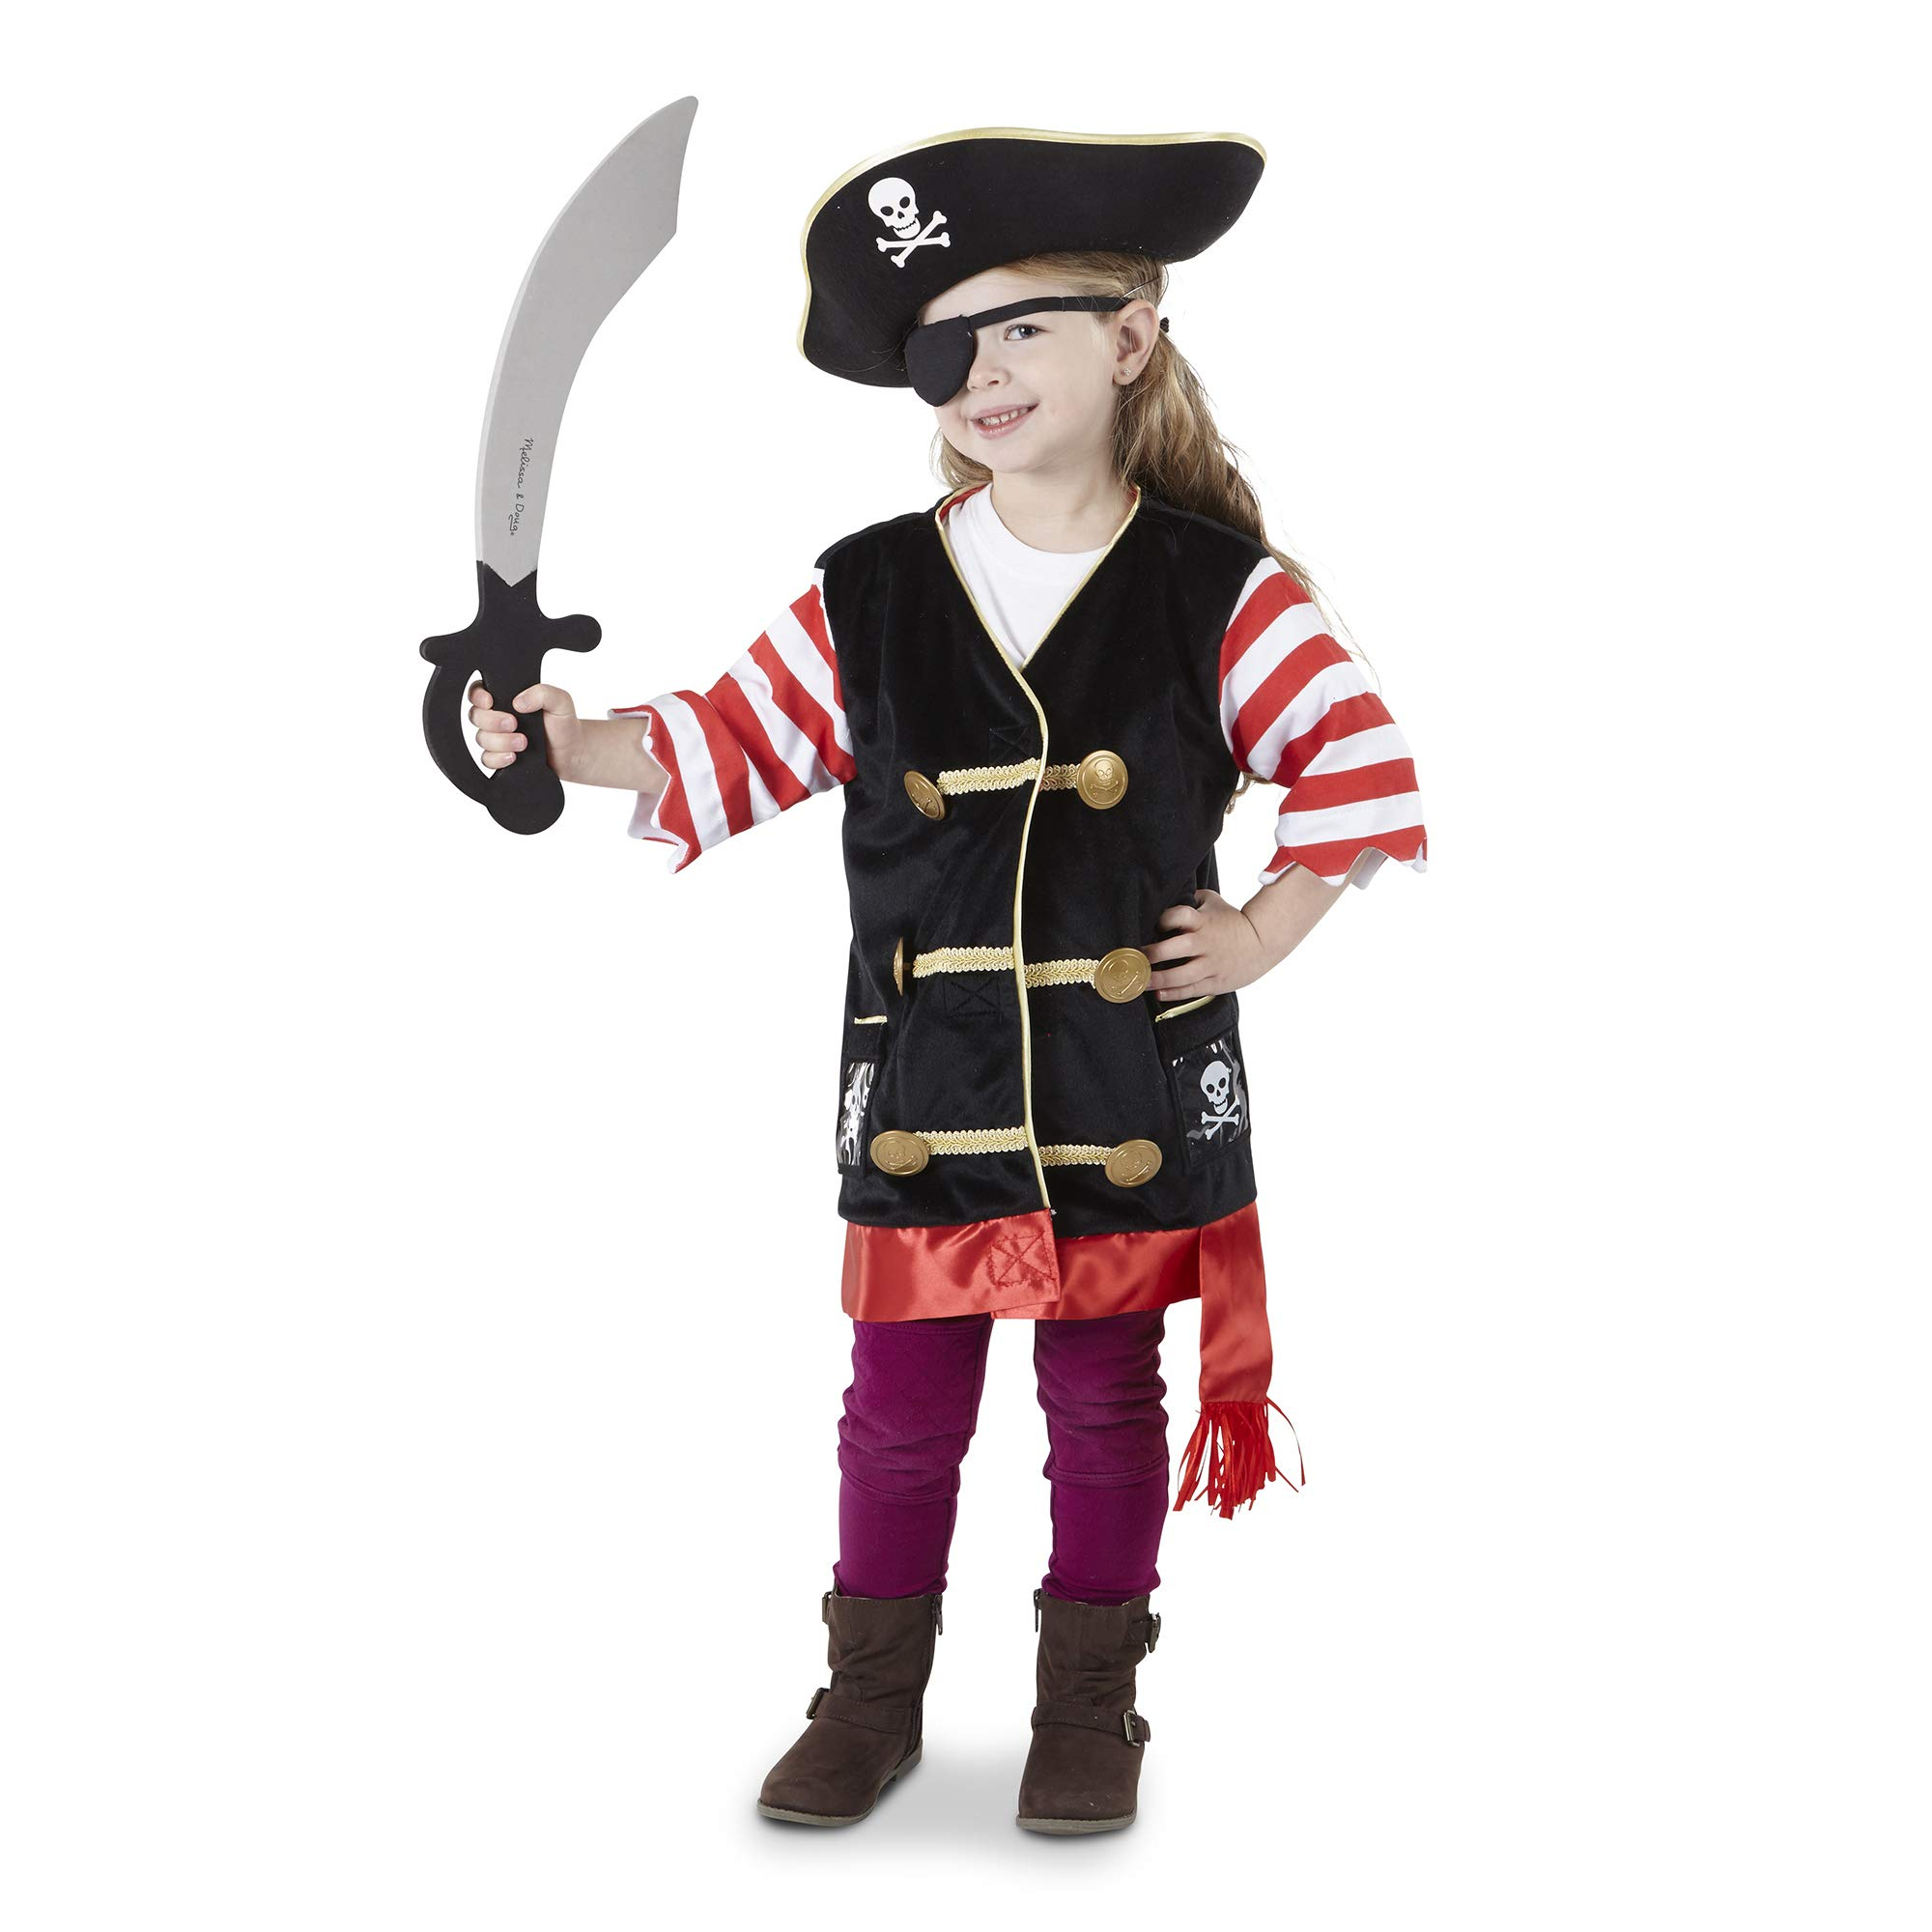 df8c4c5d8 Melissa & Doug Pirate Role Play Costume Set, Pretend Play,, Machine  Washable, 55.118 cm H x 43.18 cm W x 10.668 L